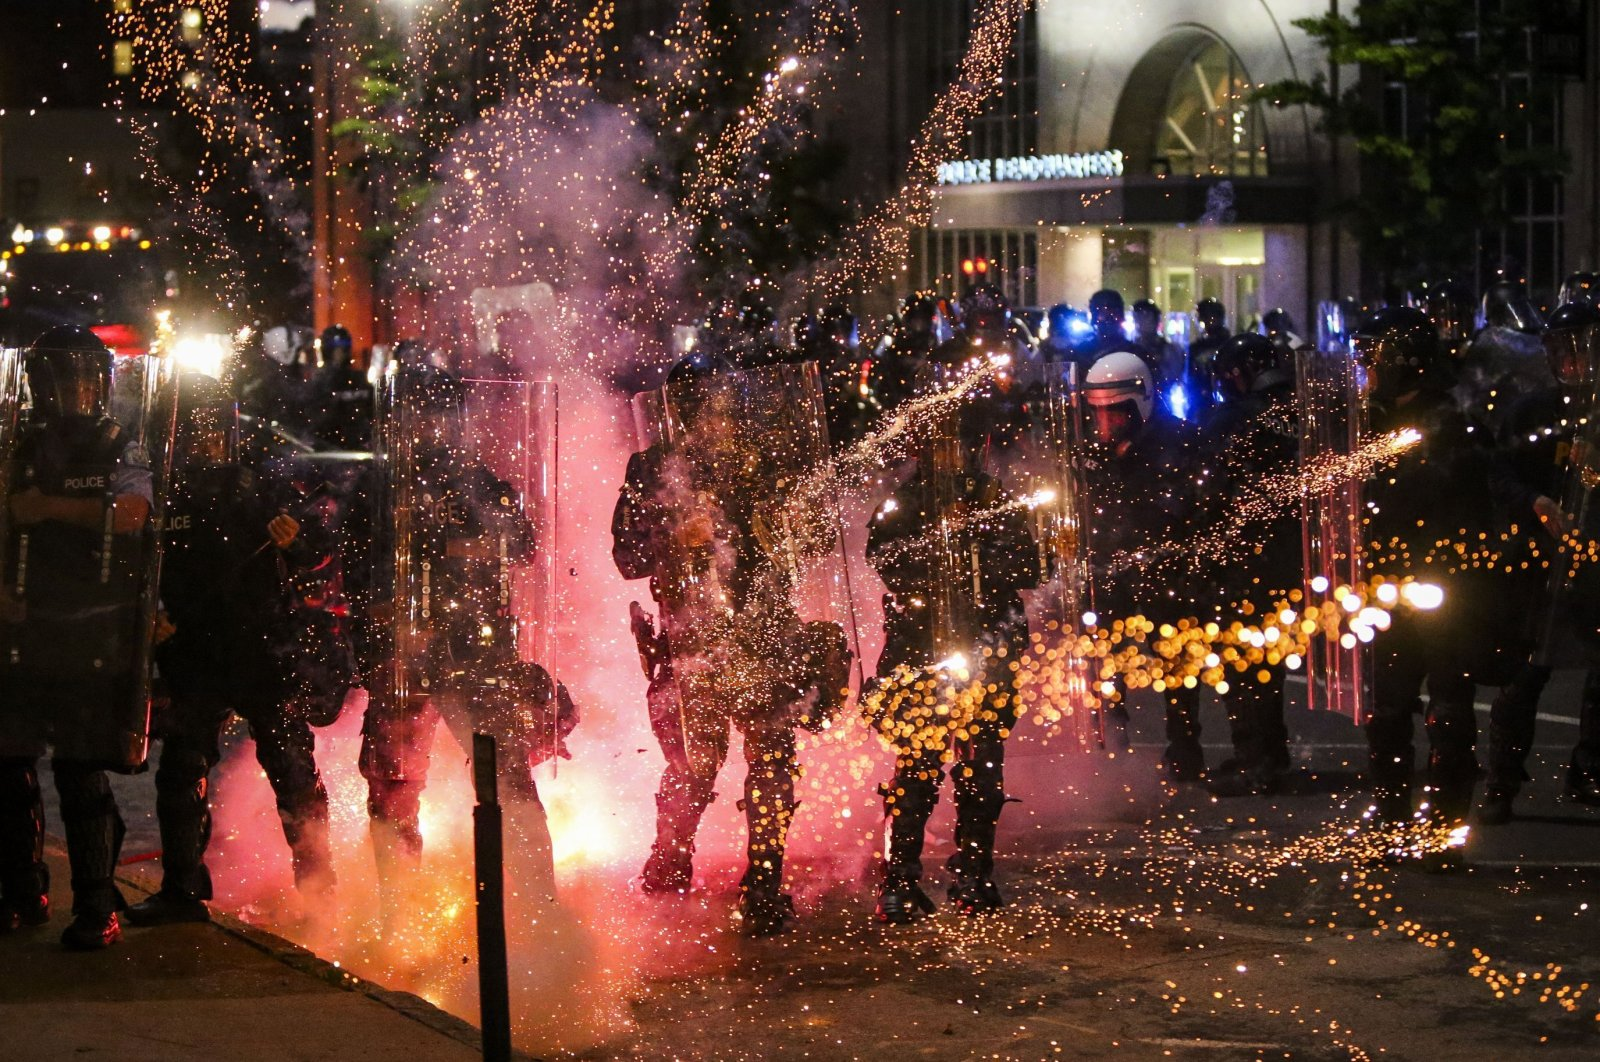 Fireworks go off in front of police at a protest in front of police headquarters in St. Louis, Missouri, U.S., June 1, 2020. (AP Photo)